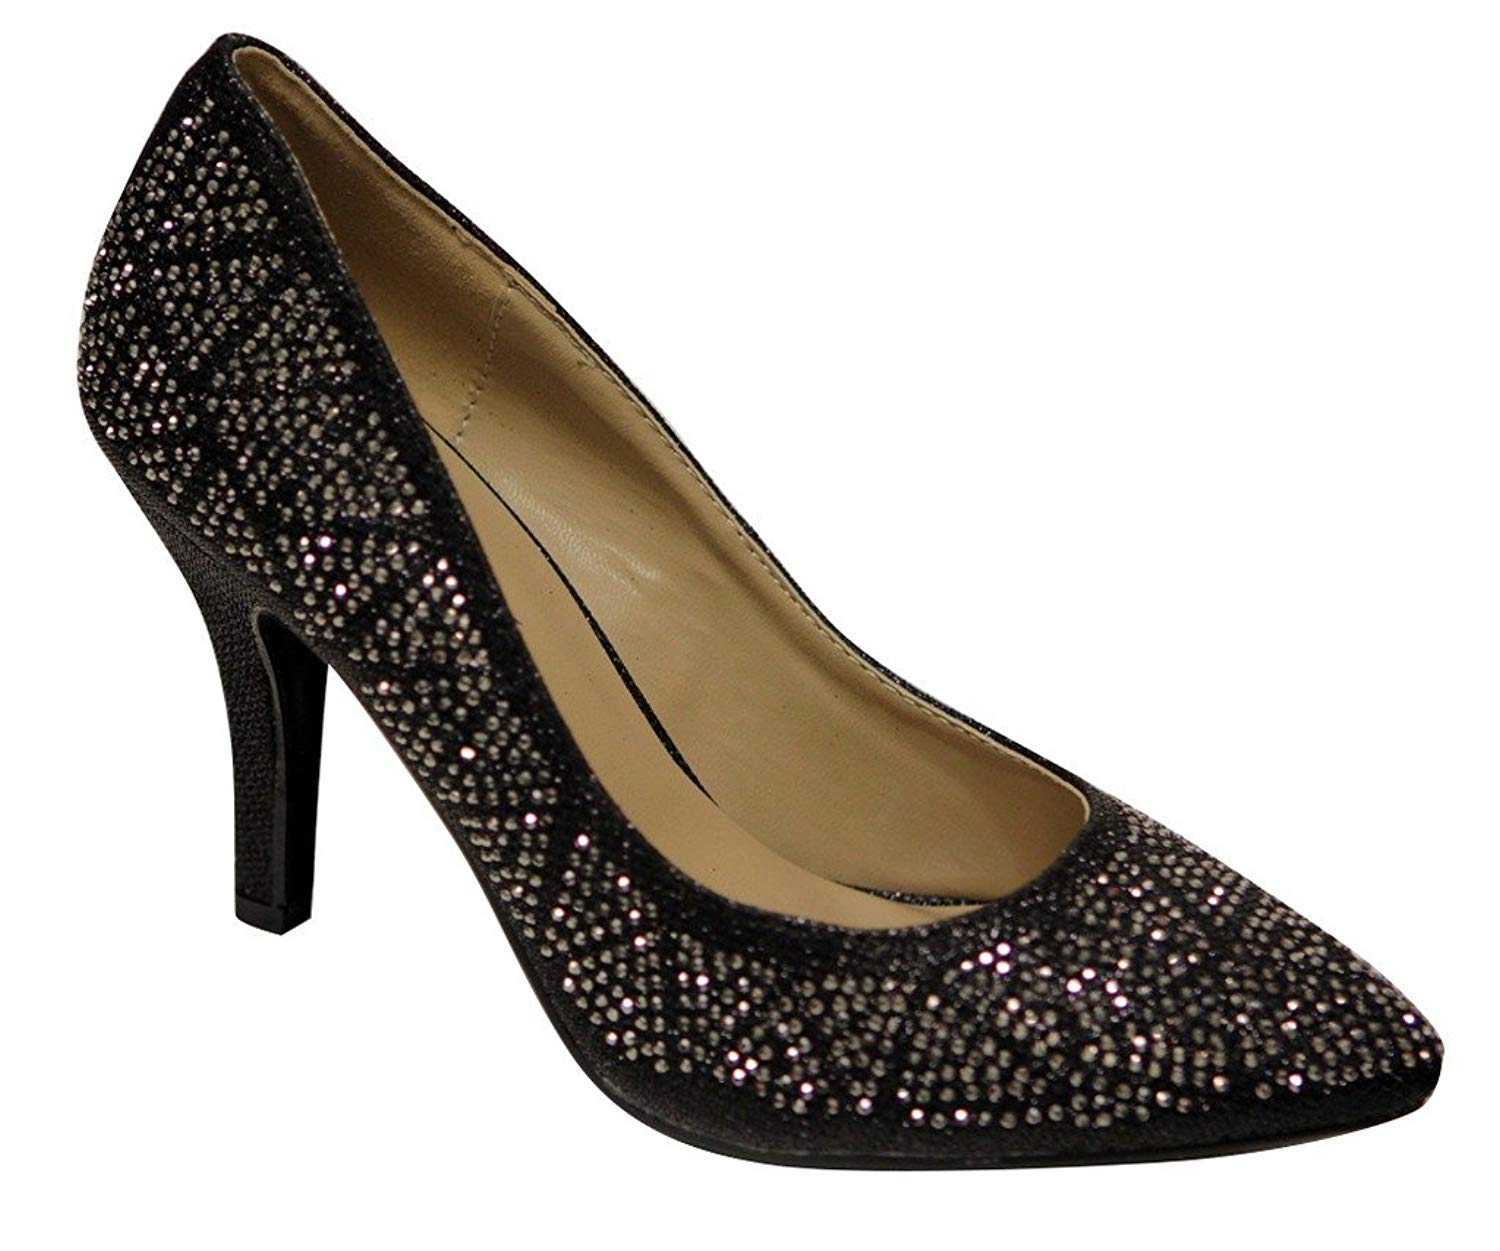 2b5e62becf Get Quotations · Delicacy Esco-97 Women's pointy toe beads glitter pumps  shoes